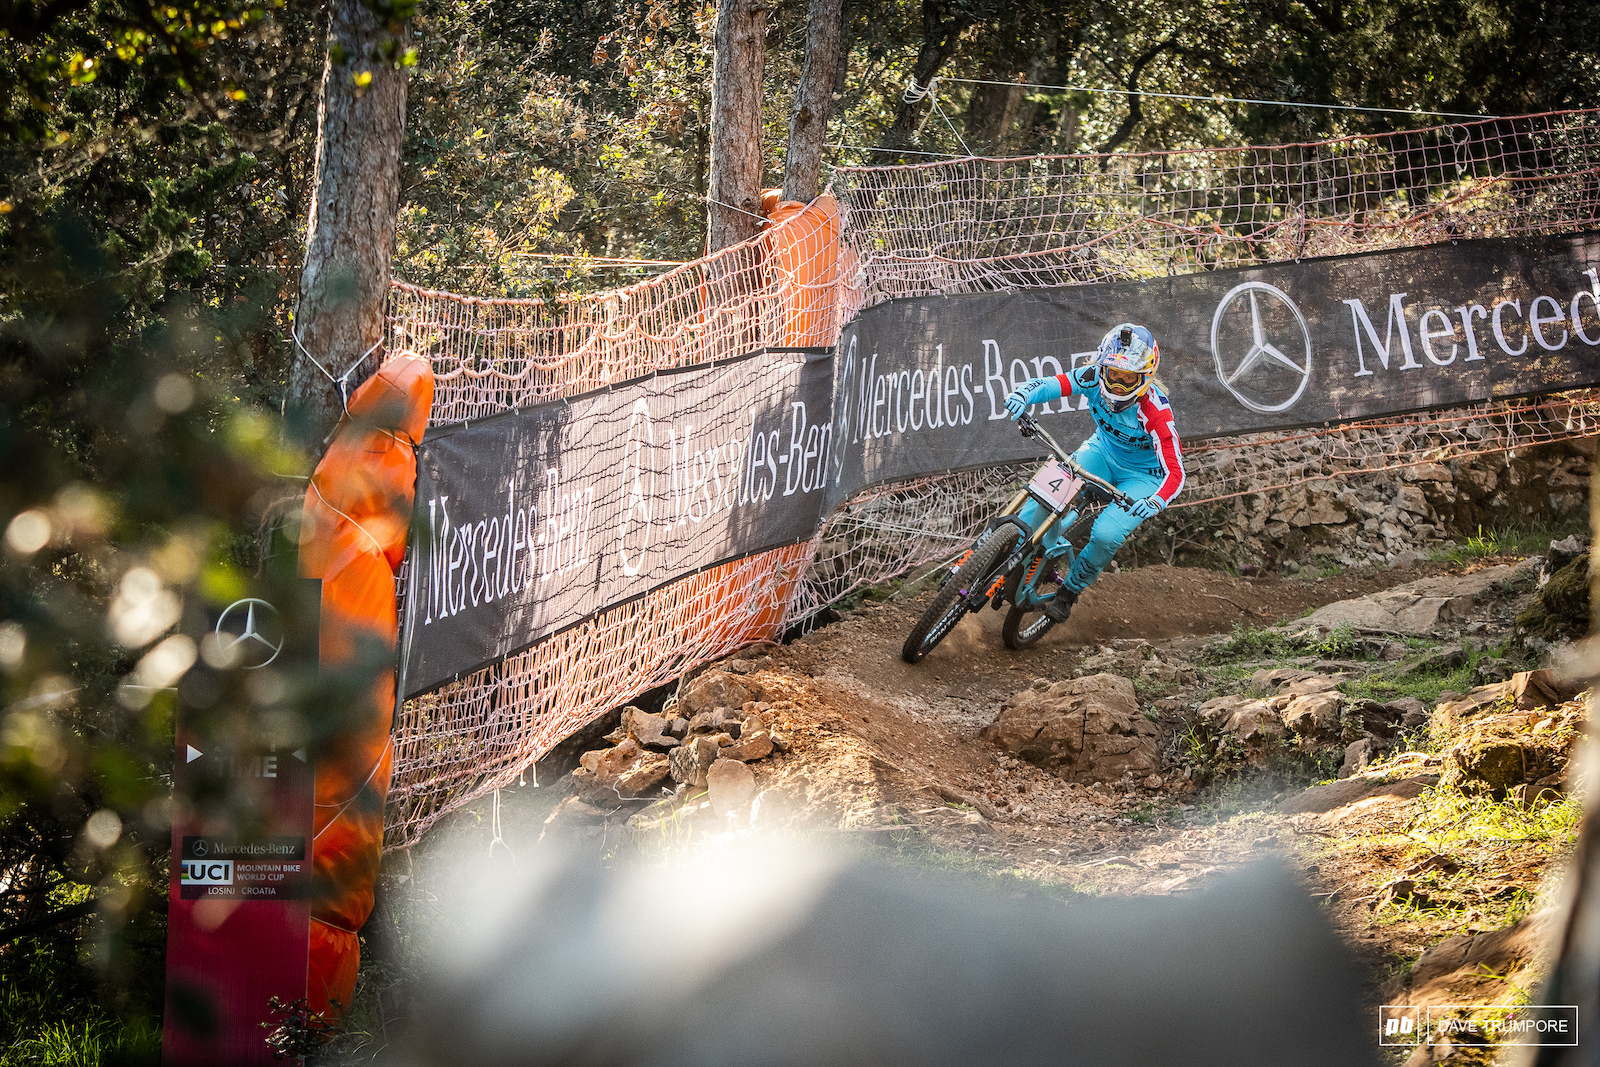 Rachel Atherton at the entrance to the woods. This would be as fast as Loic Bruni would get on his first run of the year dislocating his elbow in the following corner.